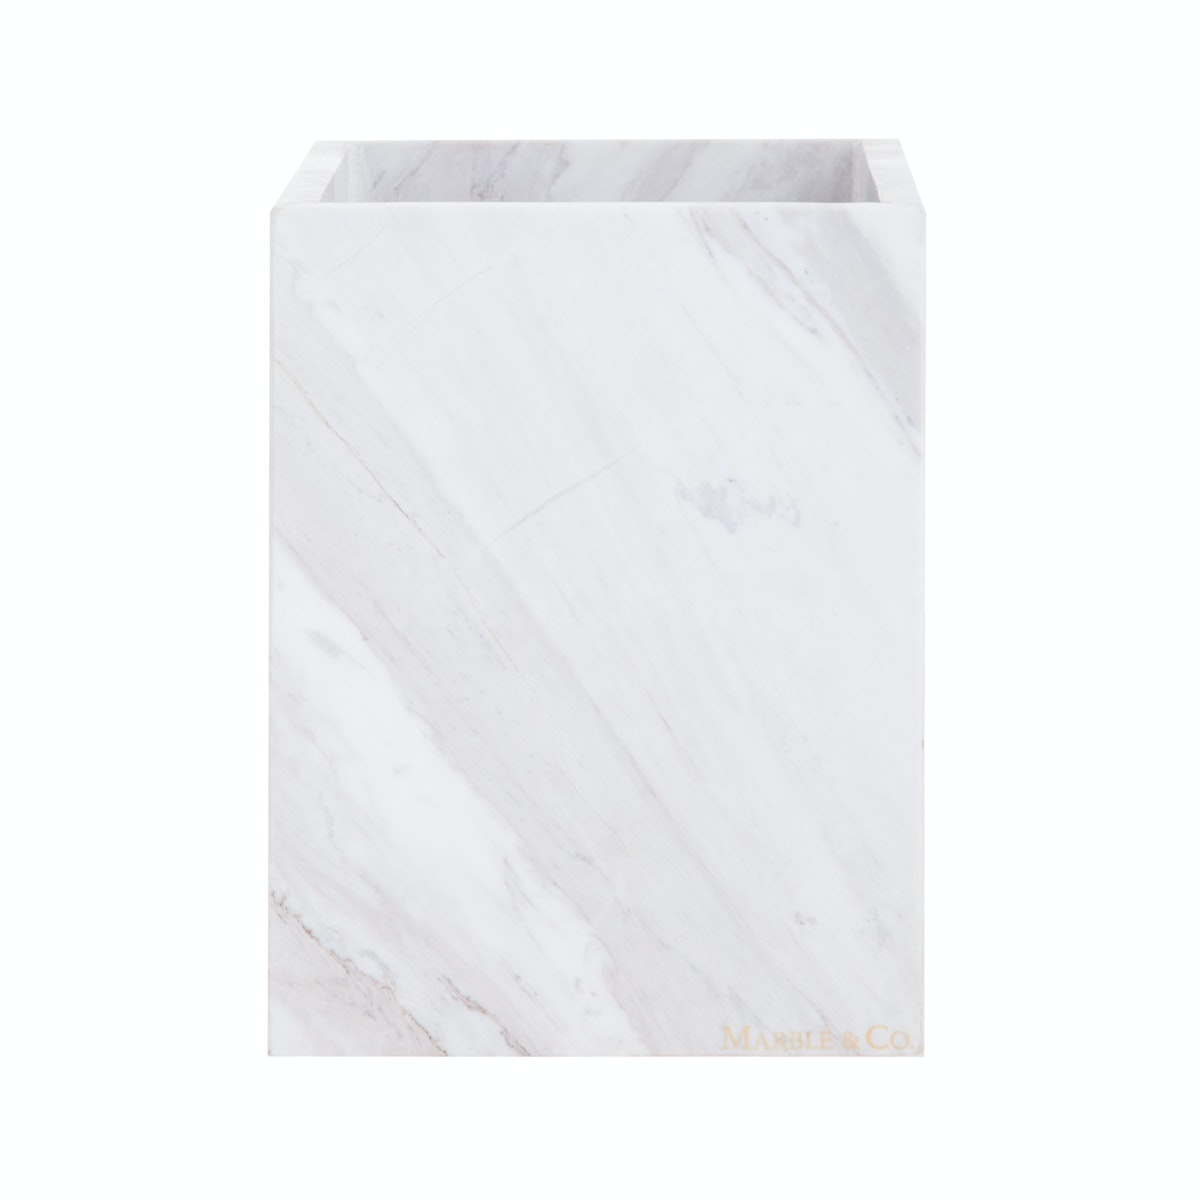 Marble & Co Aperto Marble Box (Large) Putih